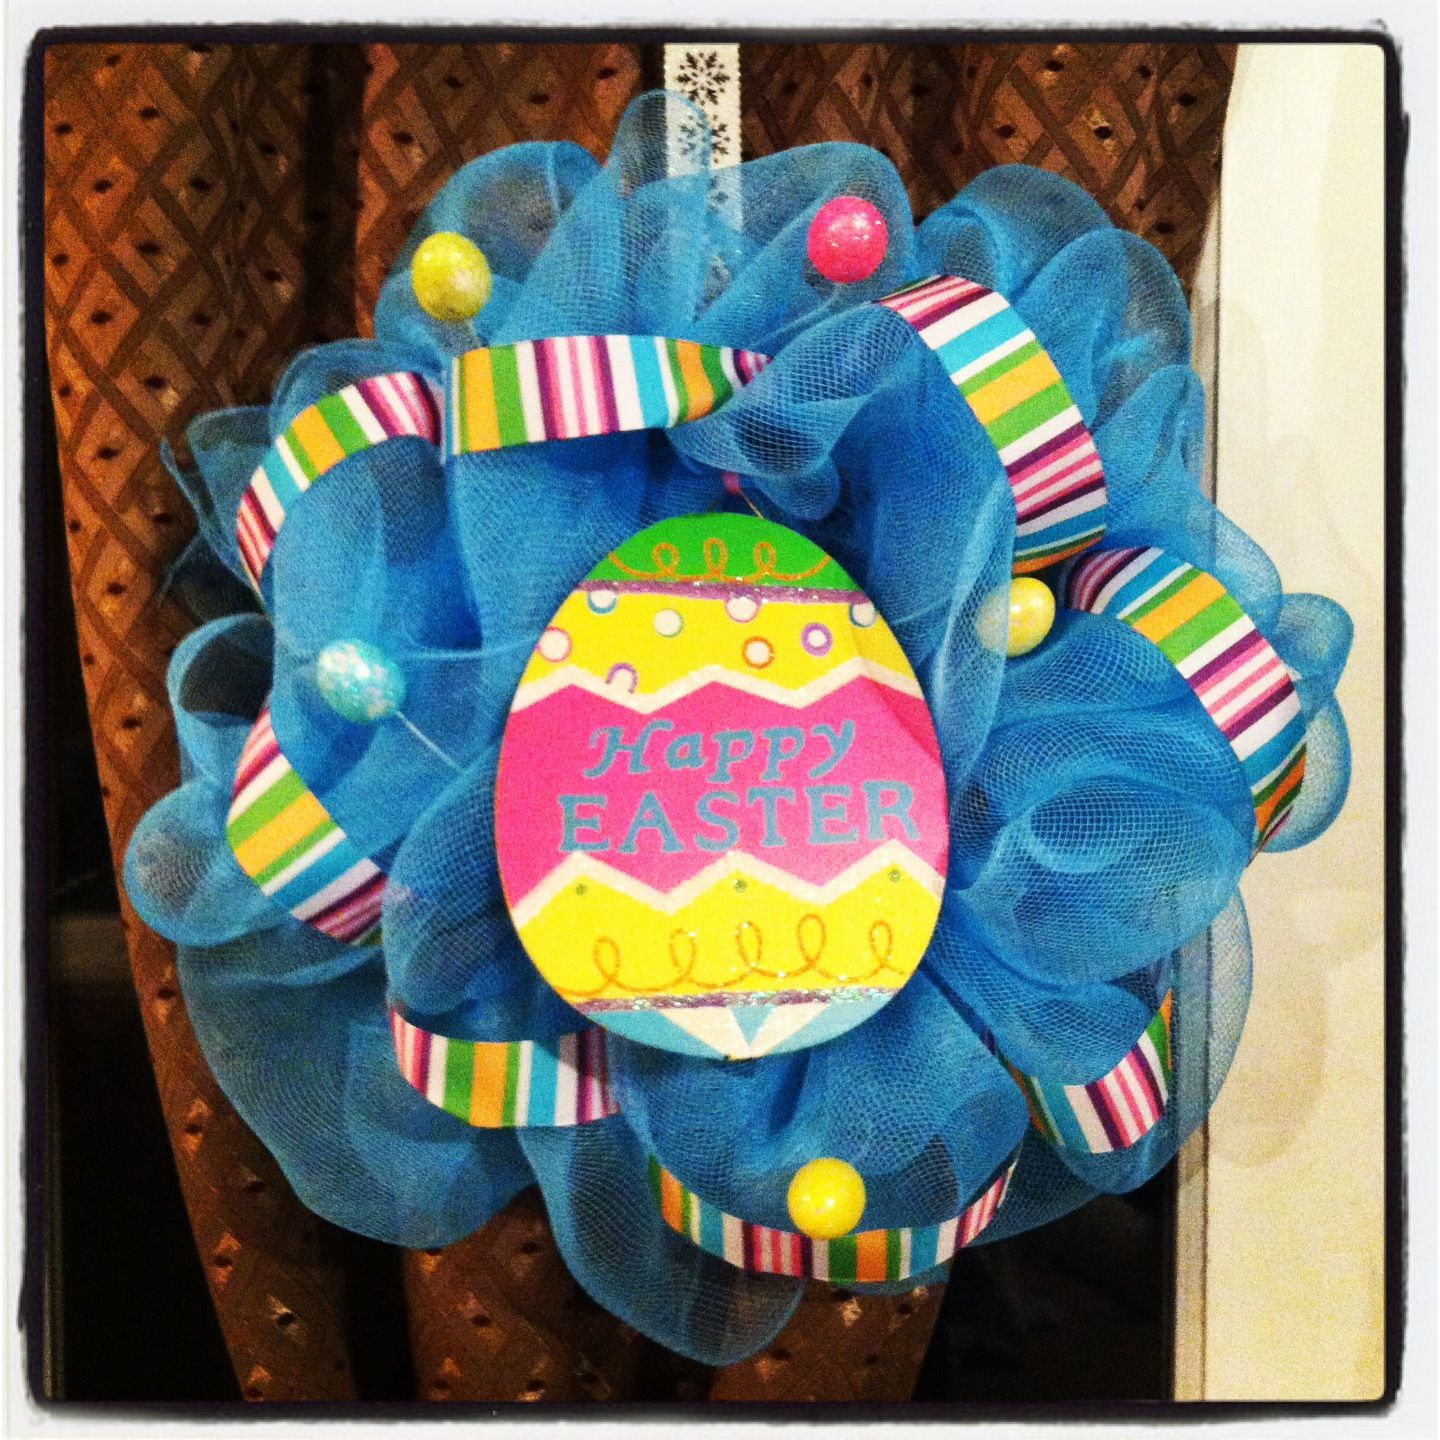 Fascinating Blue Mesh Easter Wreath Idea with Crafted Paper Egg and Colorful Stripes Ribbons and Mini Plastic Eggs